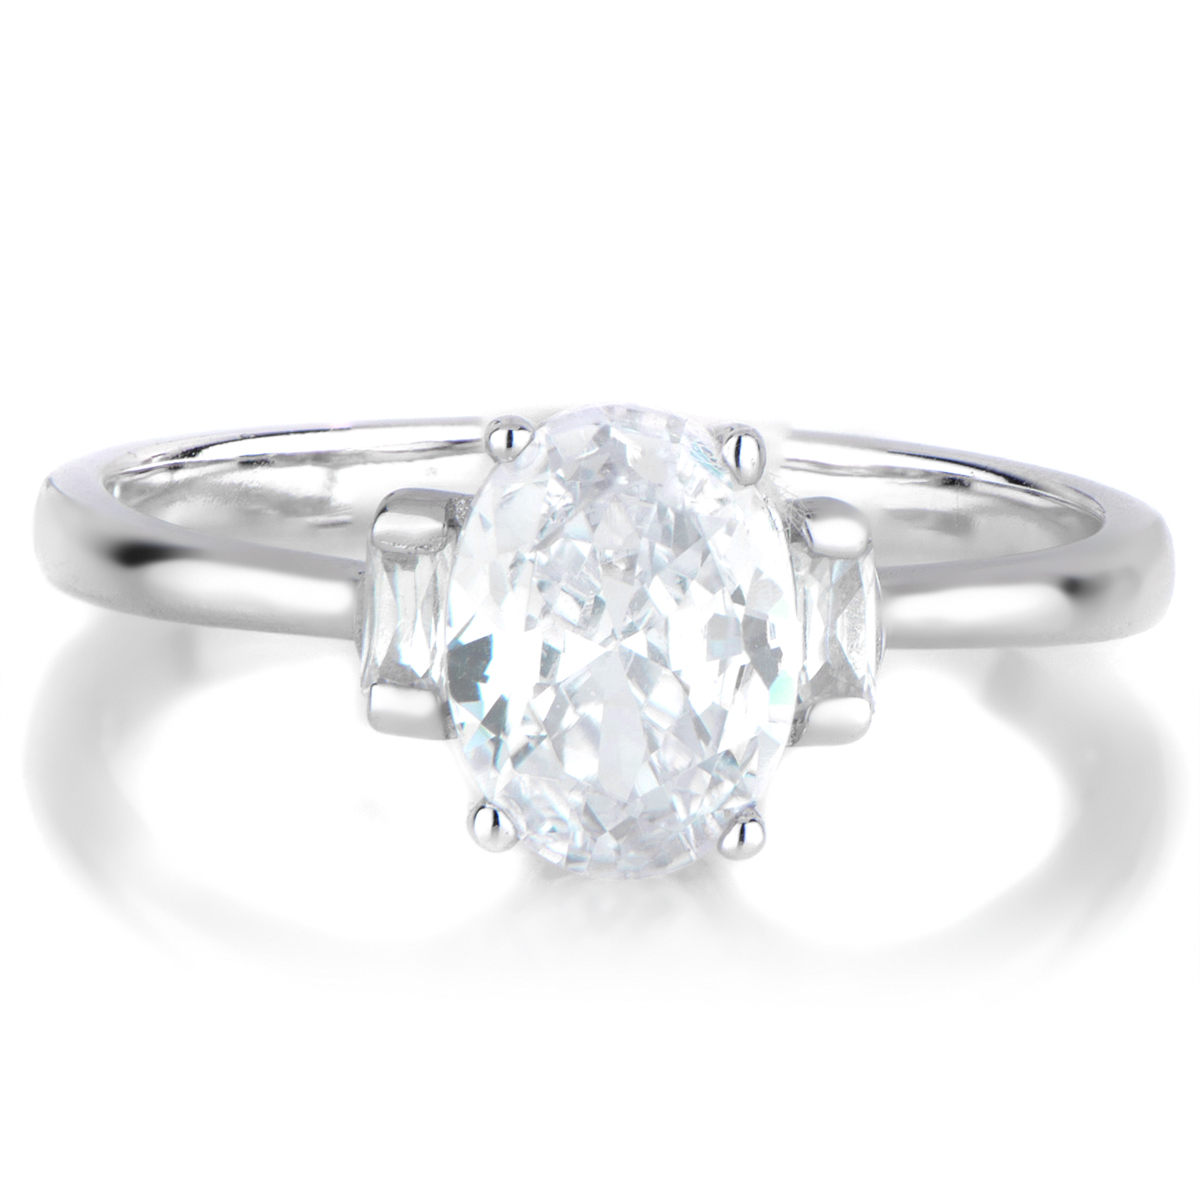 Zion s Oval Cut 3 Stone Engagement Ring